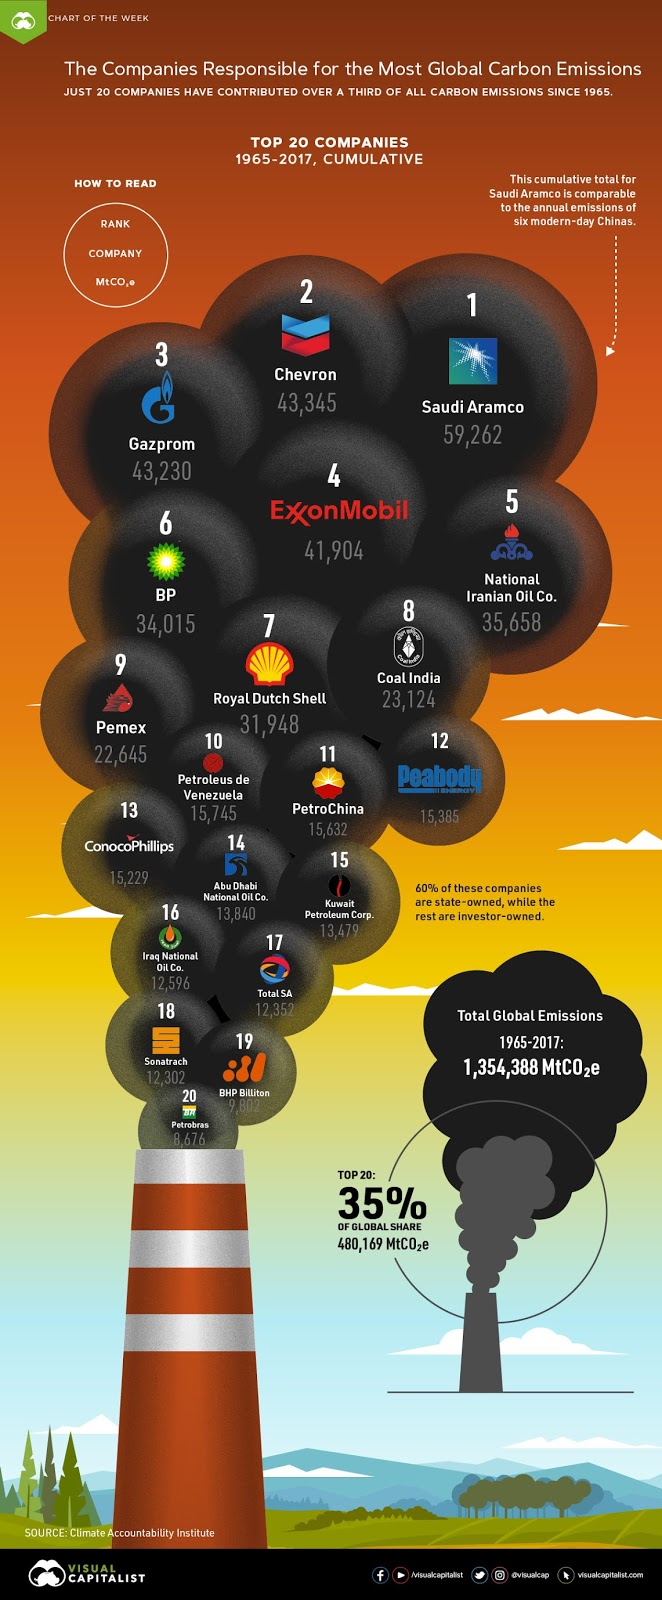 The companies responsible for the most global carbon emissions